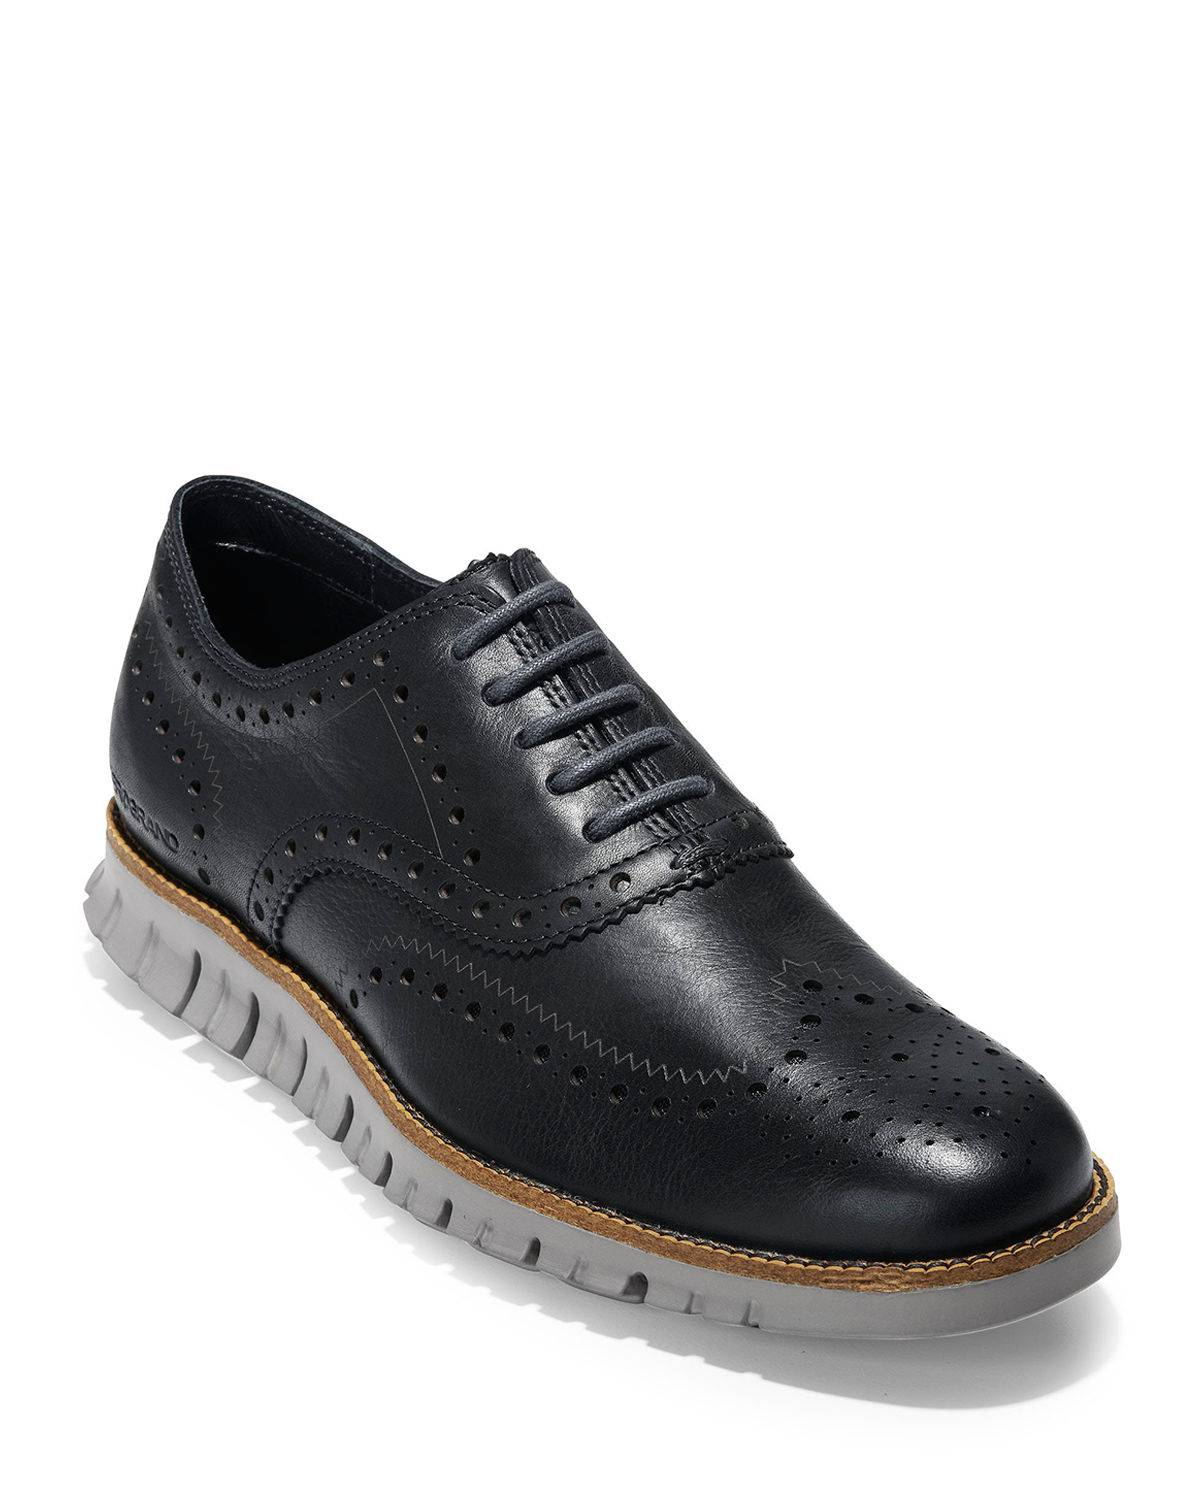 Cole Haan Men's ZeroGrand Leather Wing-Tip Oxfords - Size: 7.5D